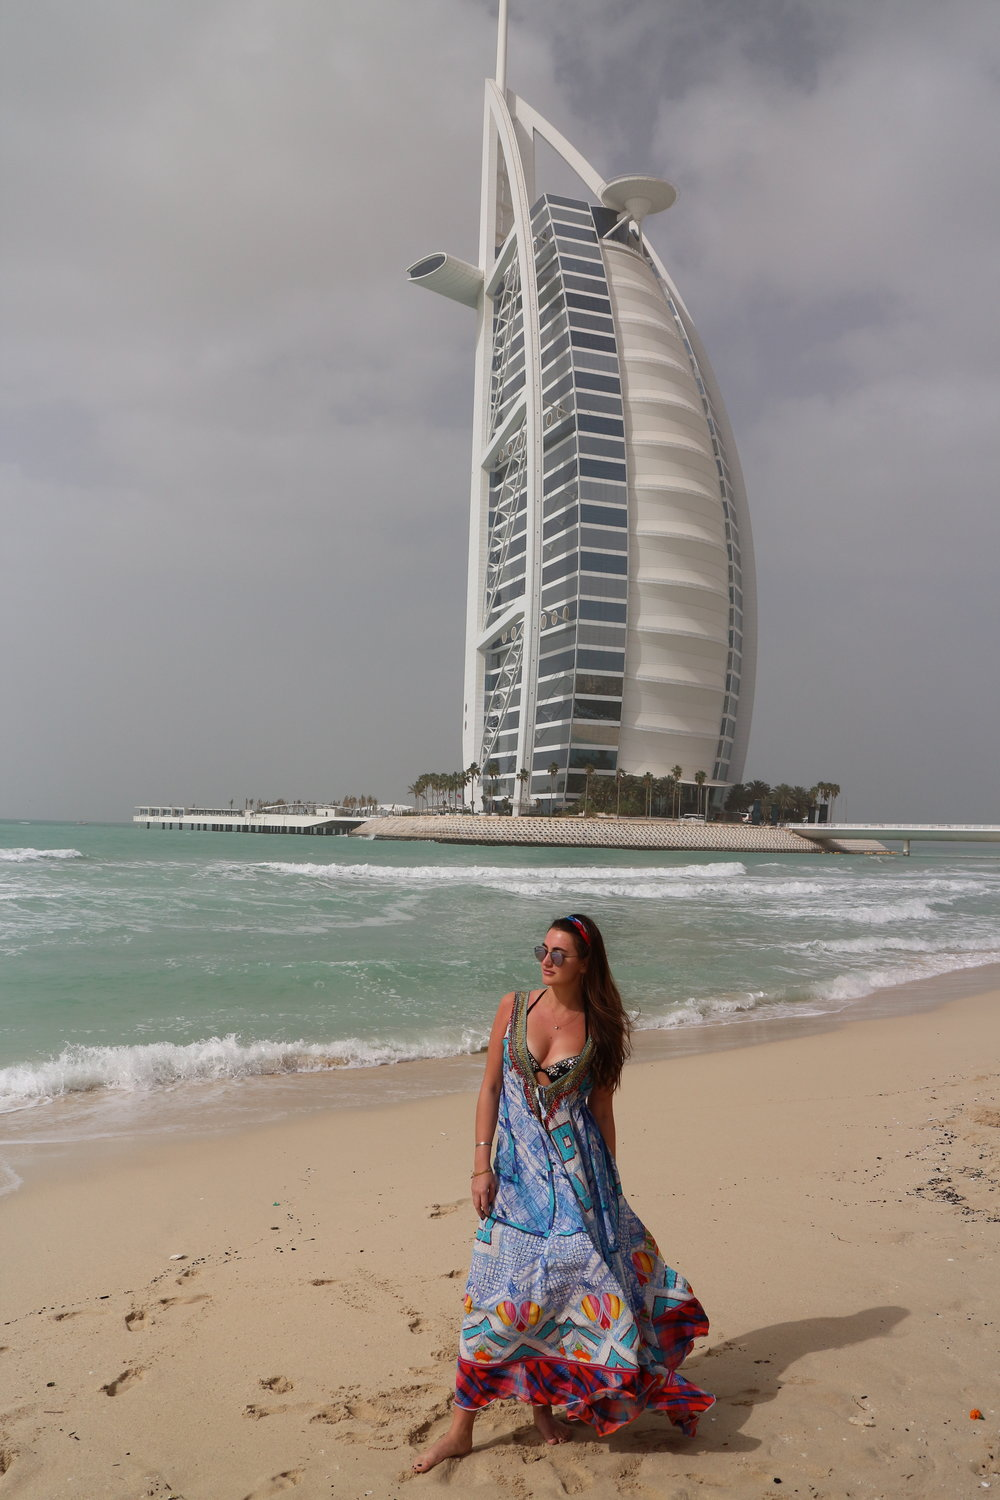 Burj Al Arab from the Al Naseem Beach